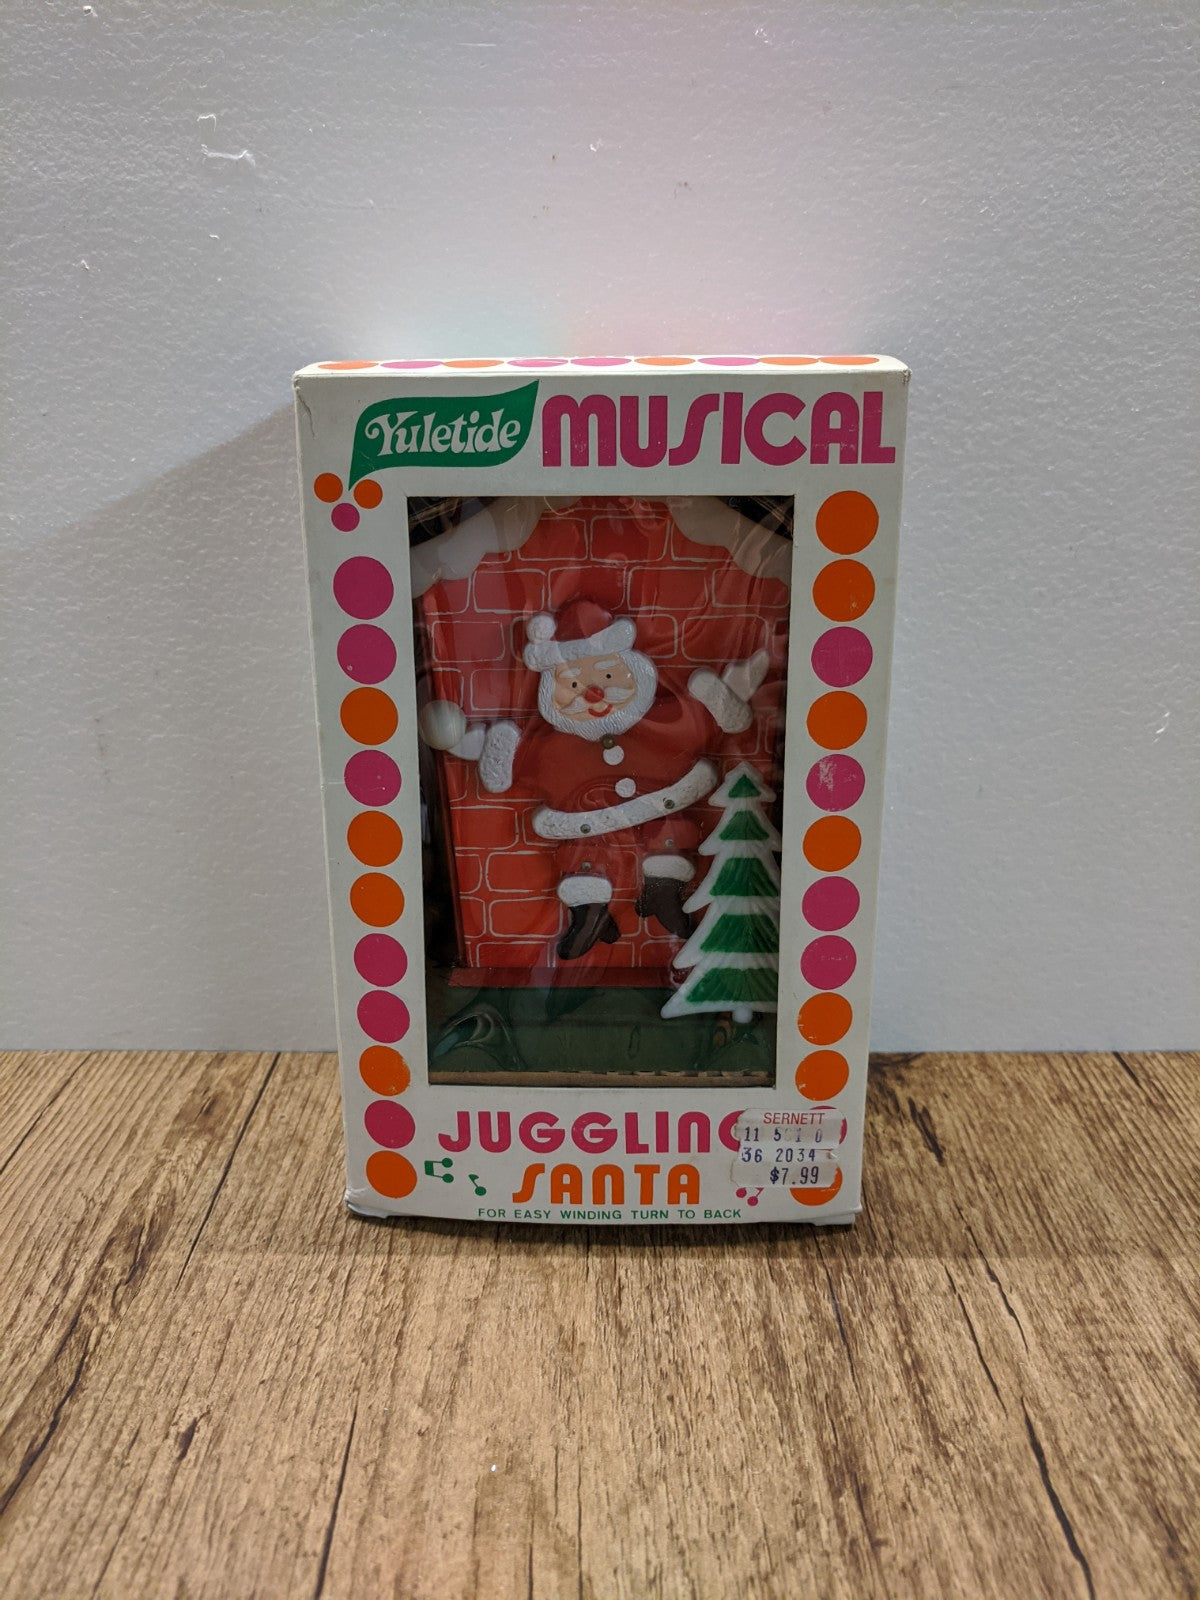 Yuletide Musical Juggling Santa